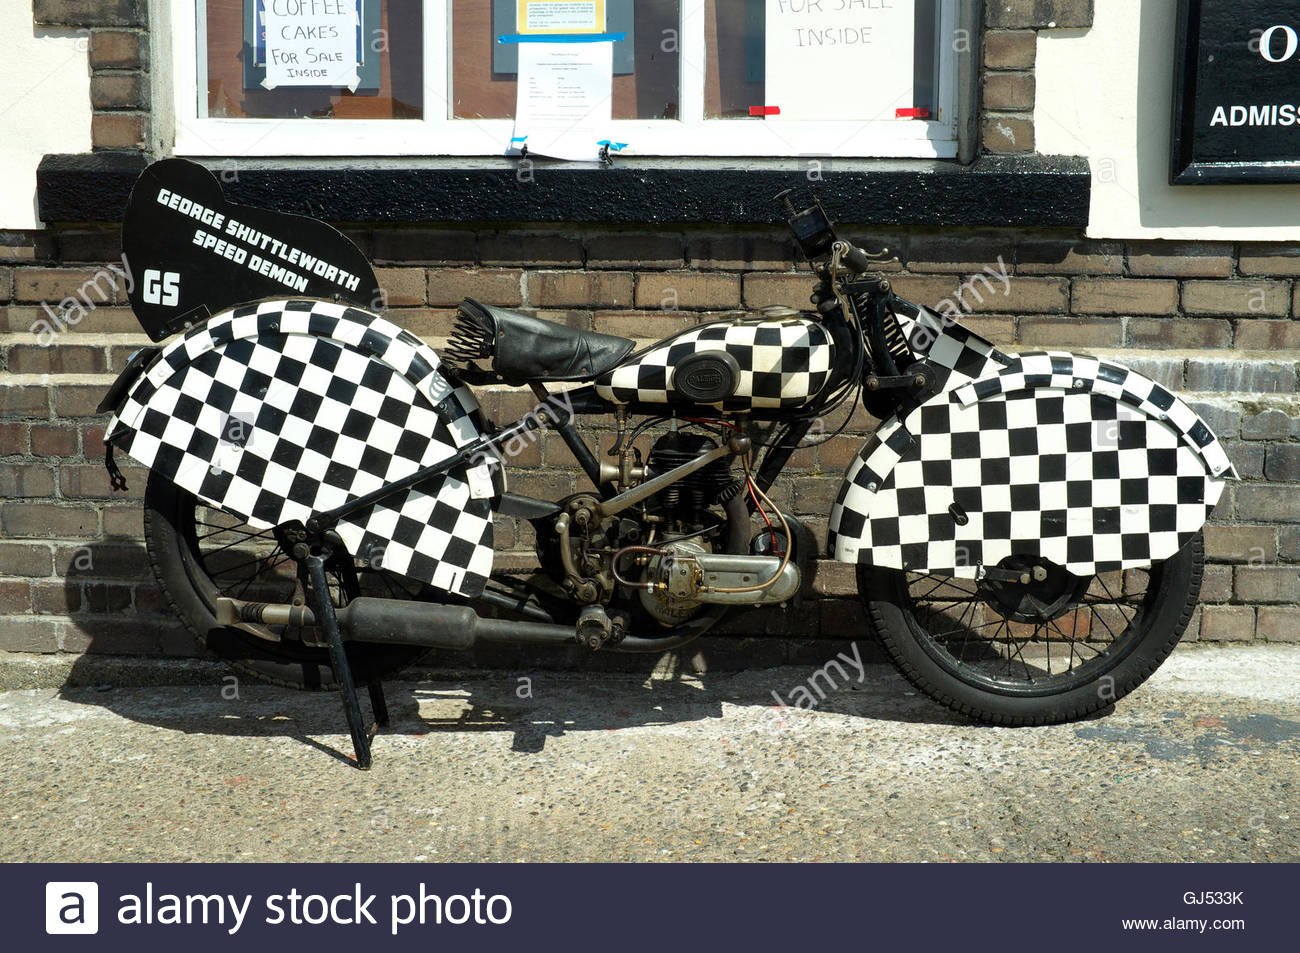 A replica of the George Shuttleworth Speed Demon motorcycle, Manx Transport Heritage Museum, Peel, Isle of Man. - Stock Image